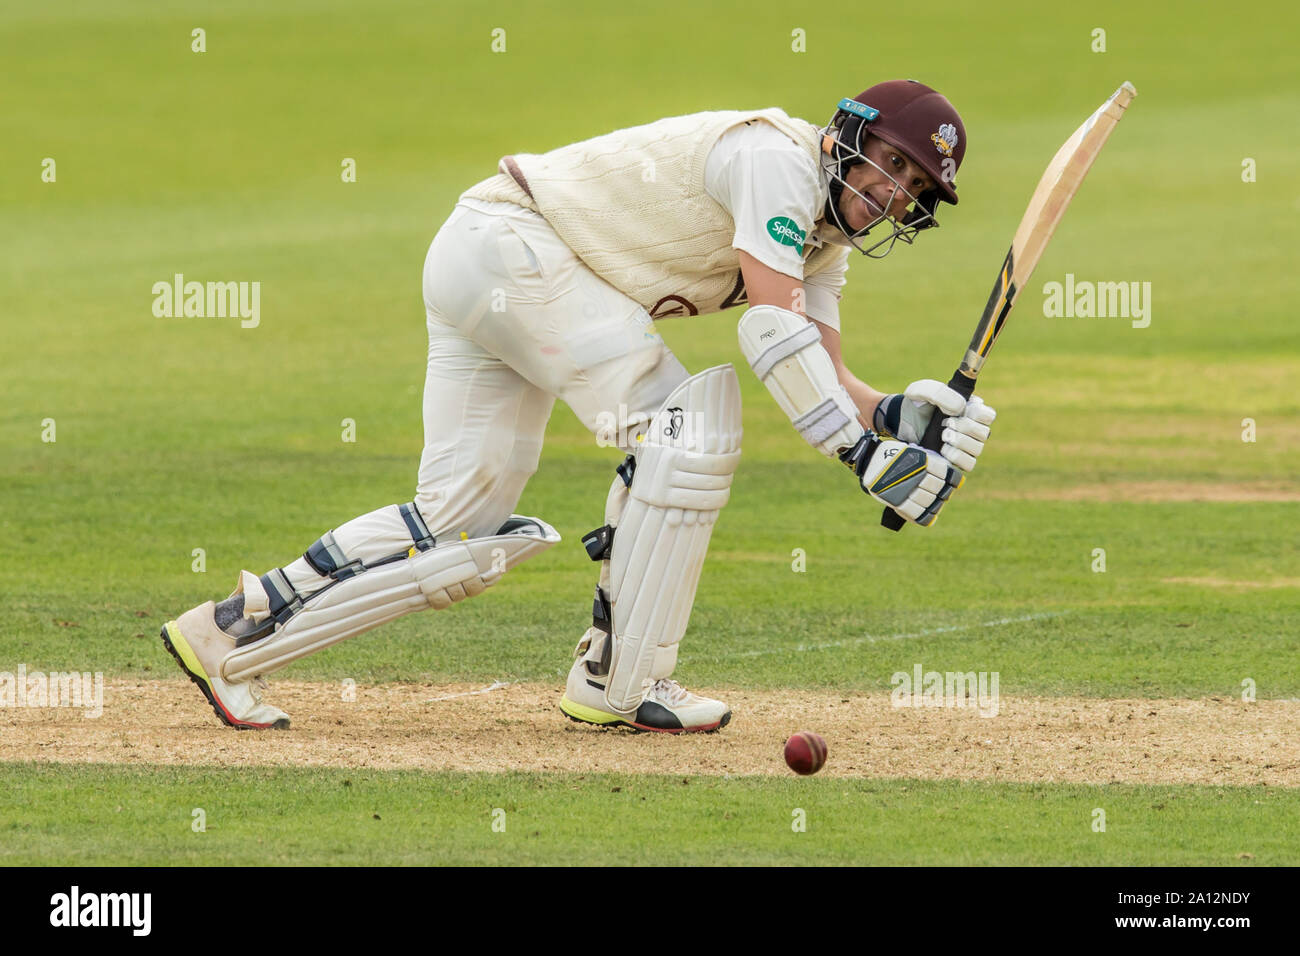 London, UK. 23 September, 2019. Scott Borthwick batting for Surrey against Nottinghamshire on day one of the Specsavers County Championship game at the Oval. David Rowe/Alamy Live News Stock Photo